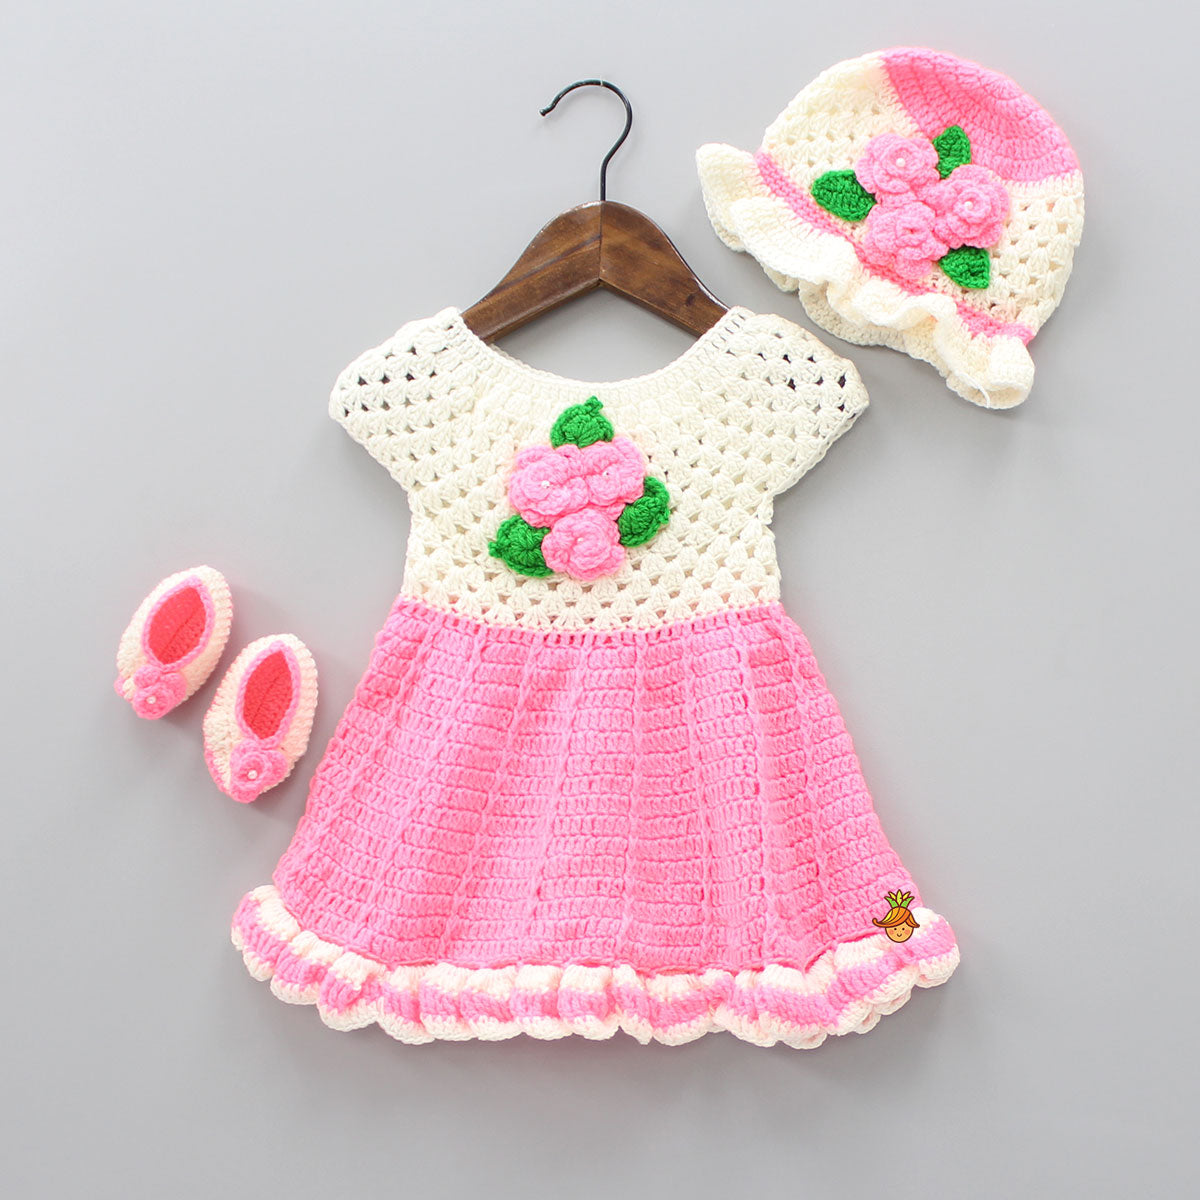 Off White And Pink Floral Crochet Dress With Cap And Booties